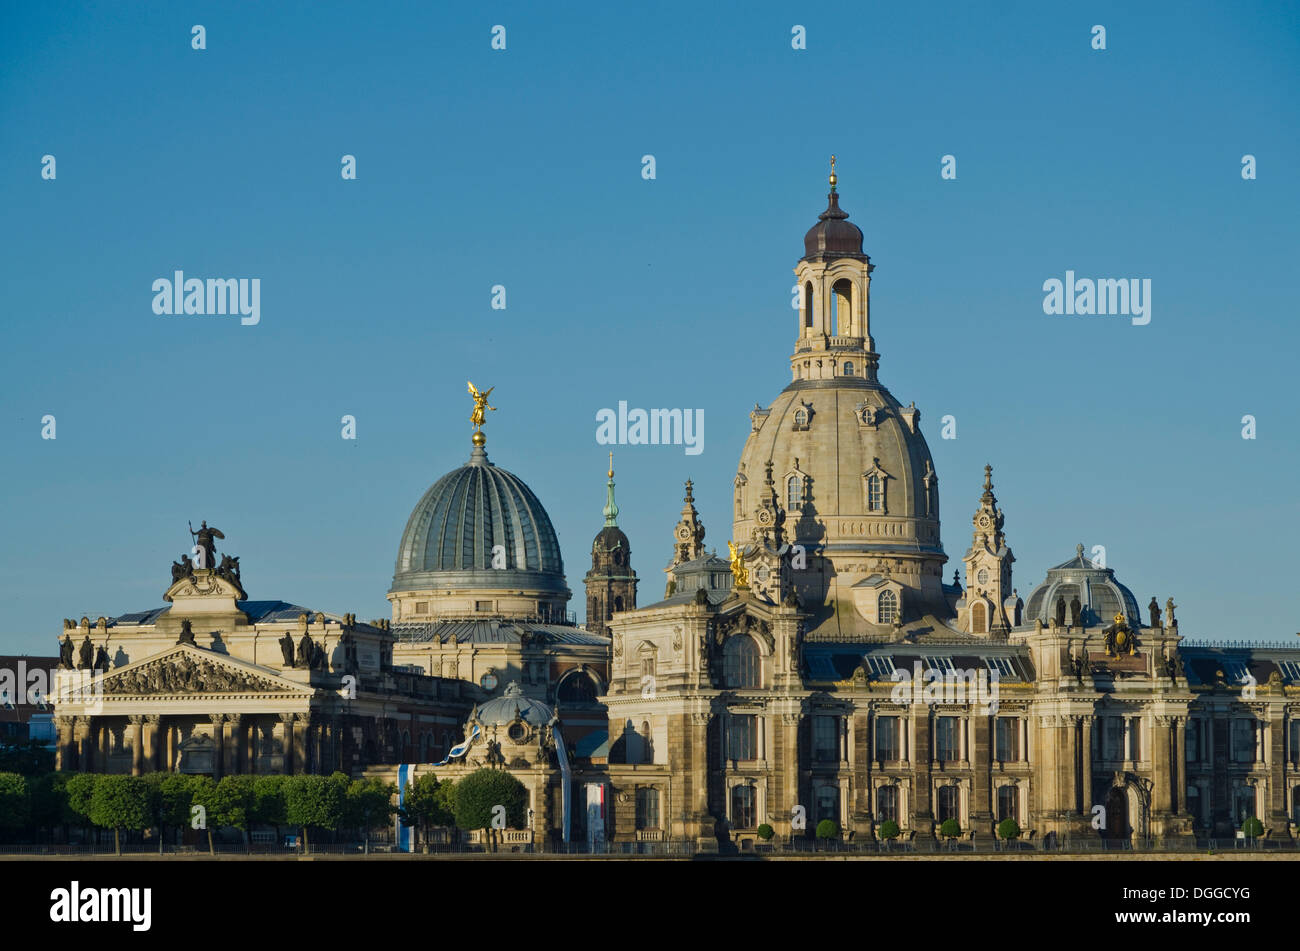 Part of the 'Bruehlsche Terasse', the 'Akademie der Kuenste' and the 'Frauenkirche', seen across the river Elbe from the bridge - Stock Image